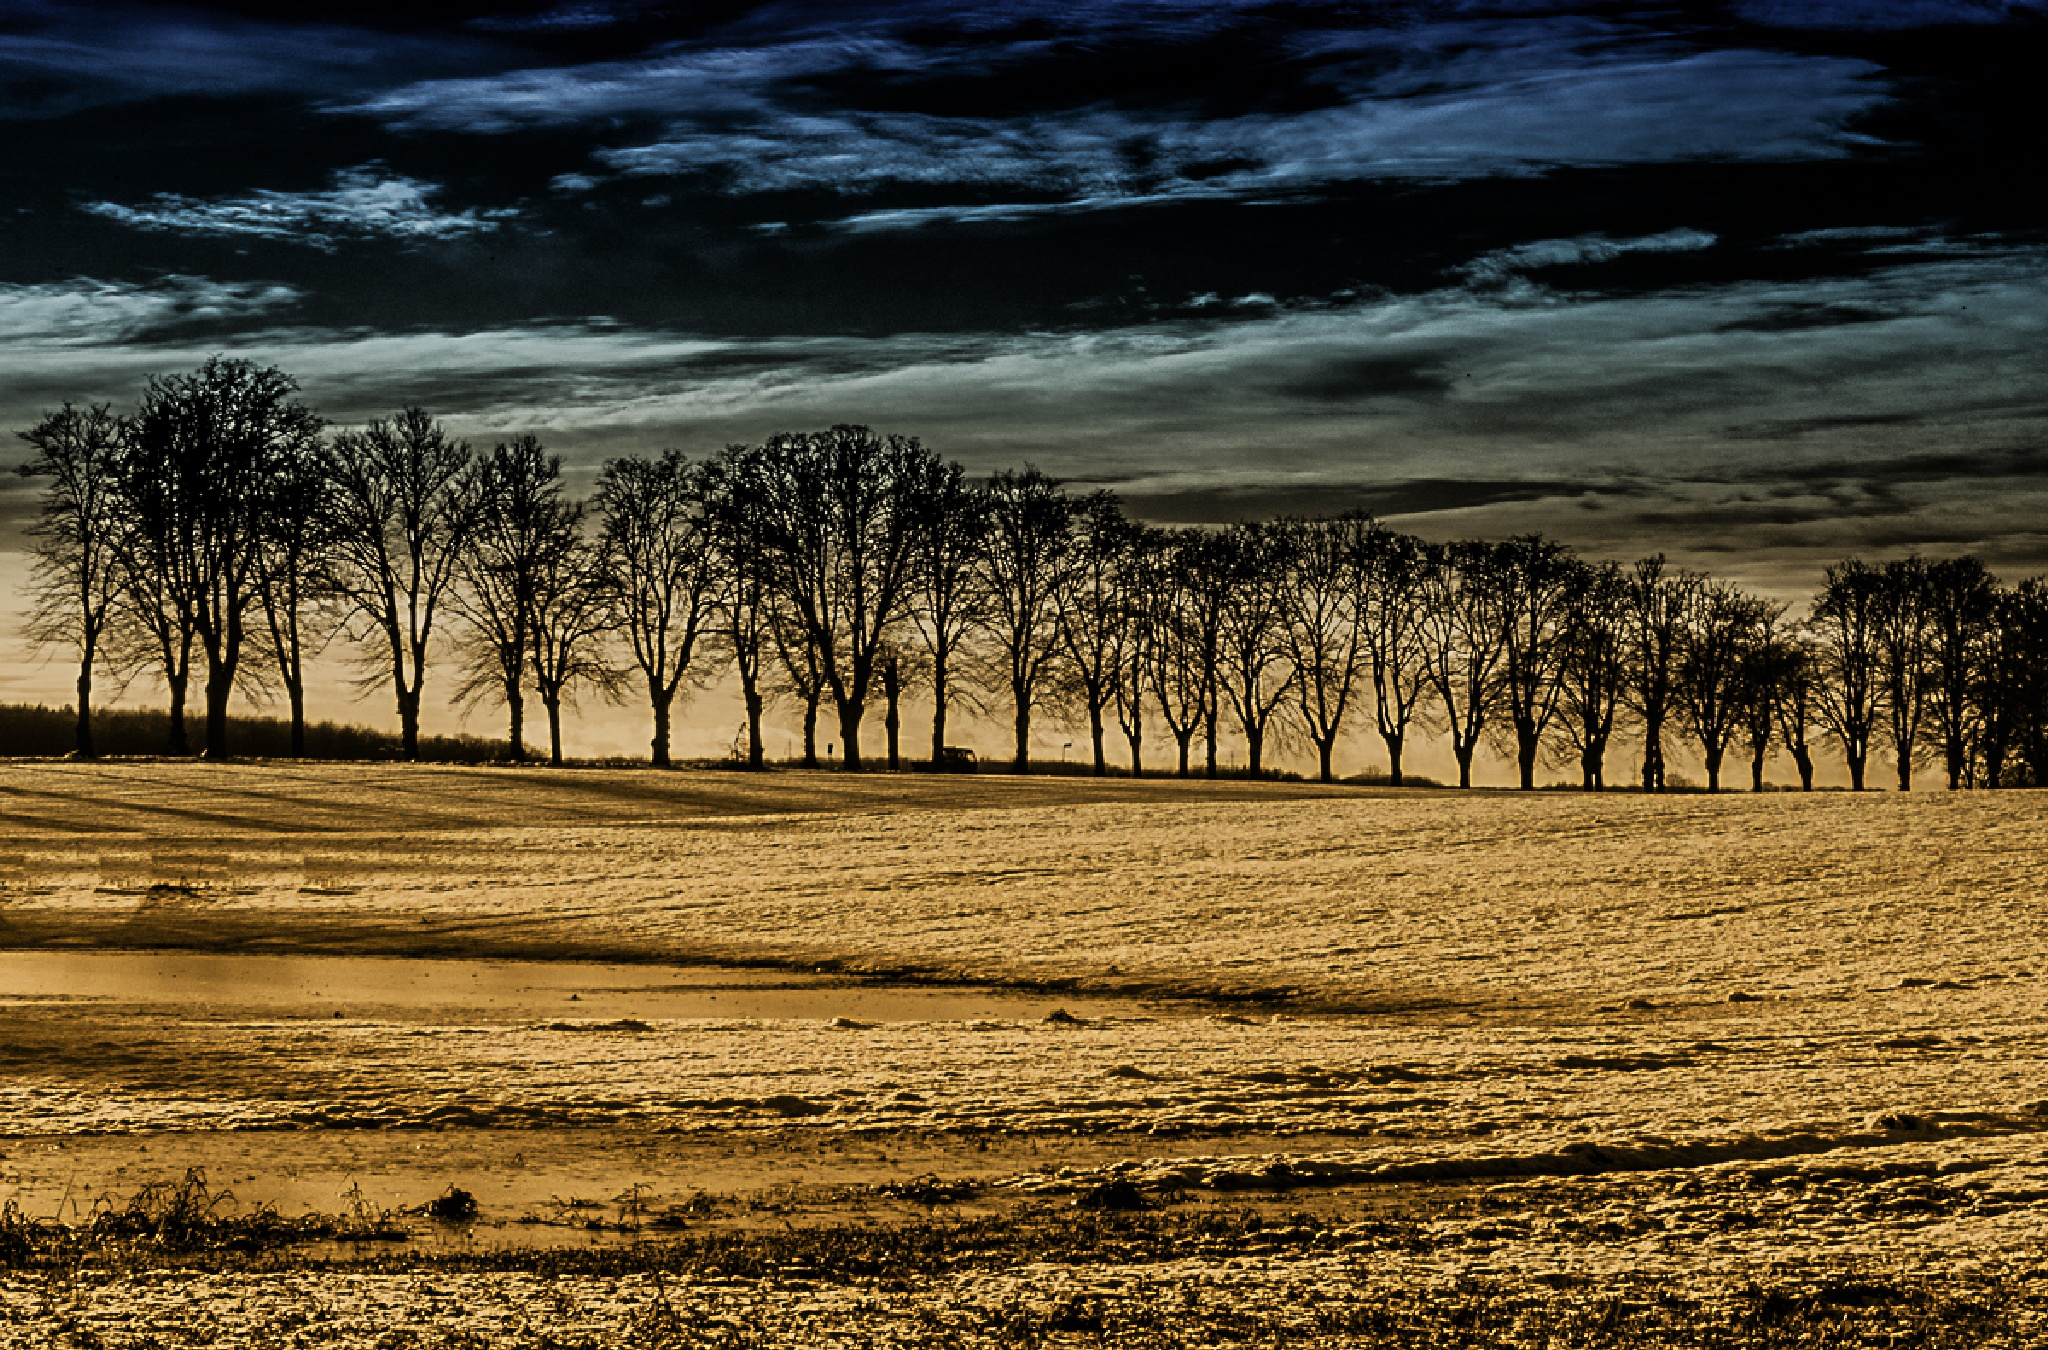 Trees by oliverpo79